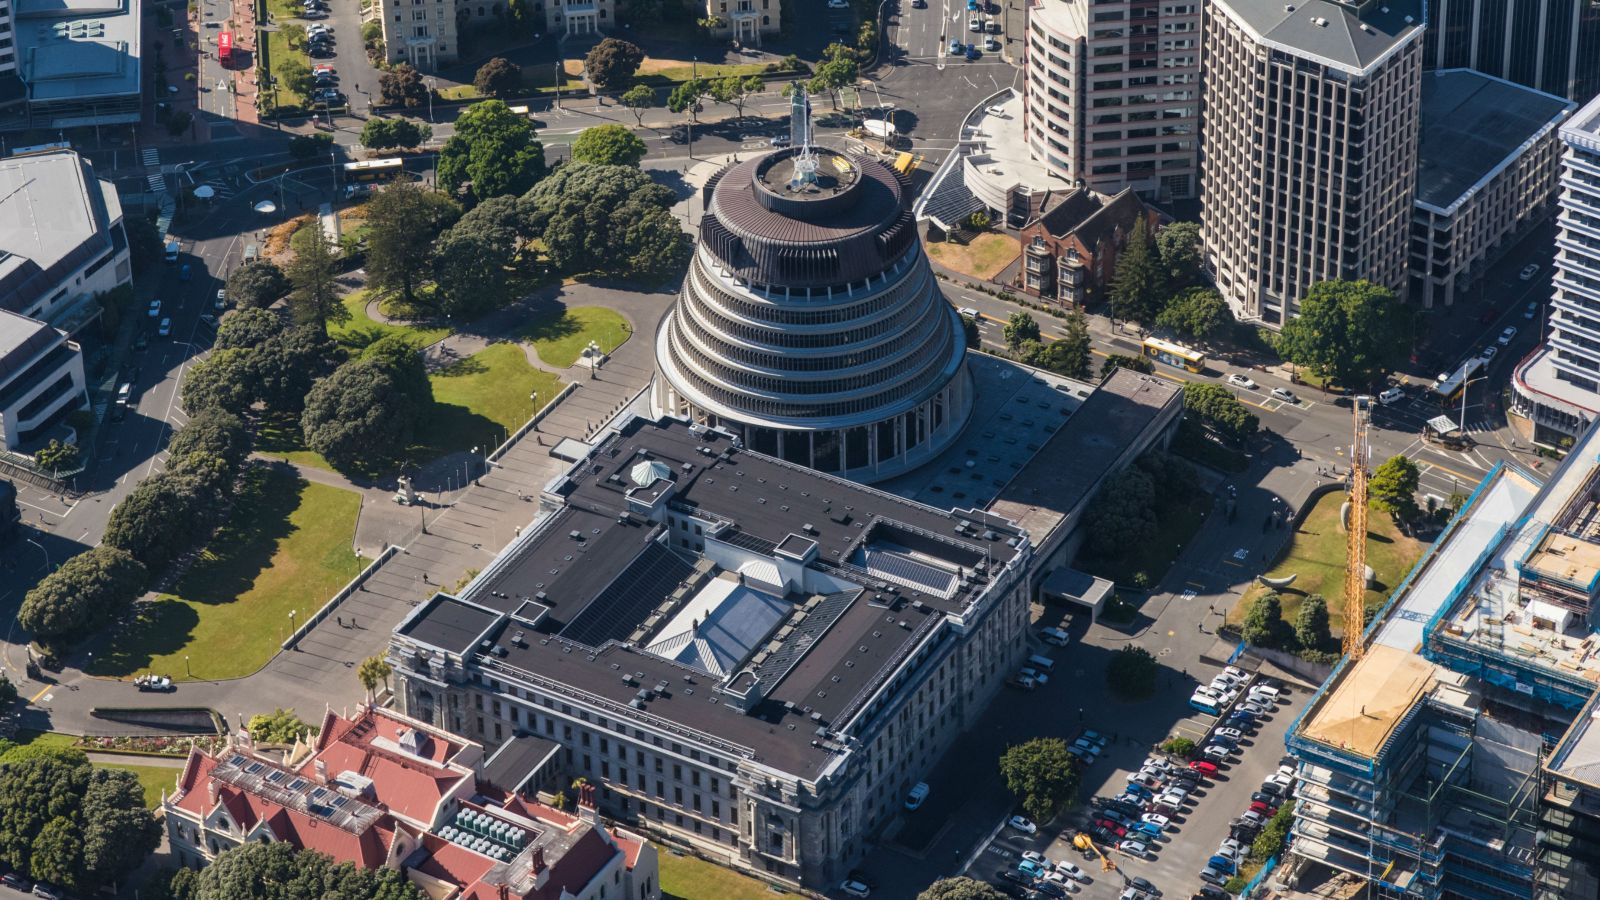 image of NZ government buildings